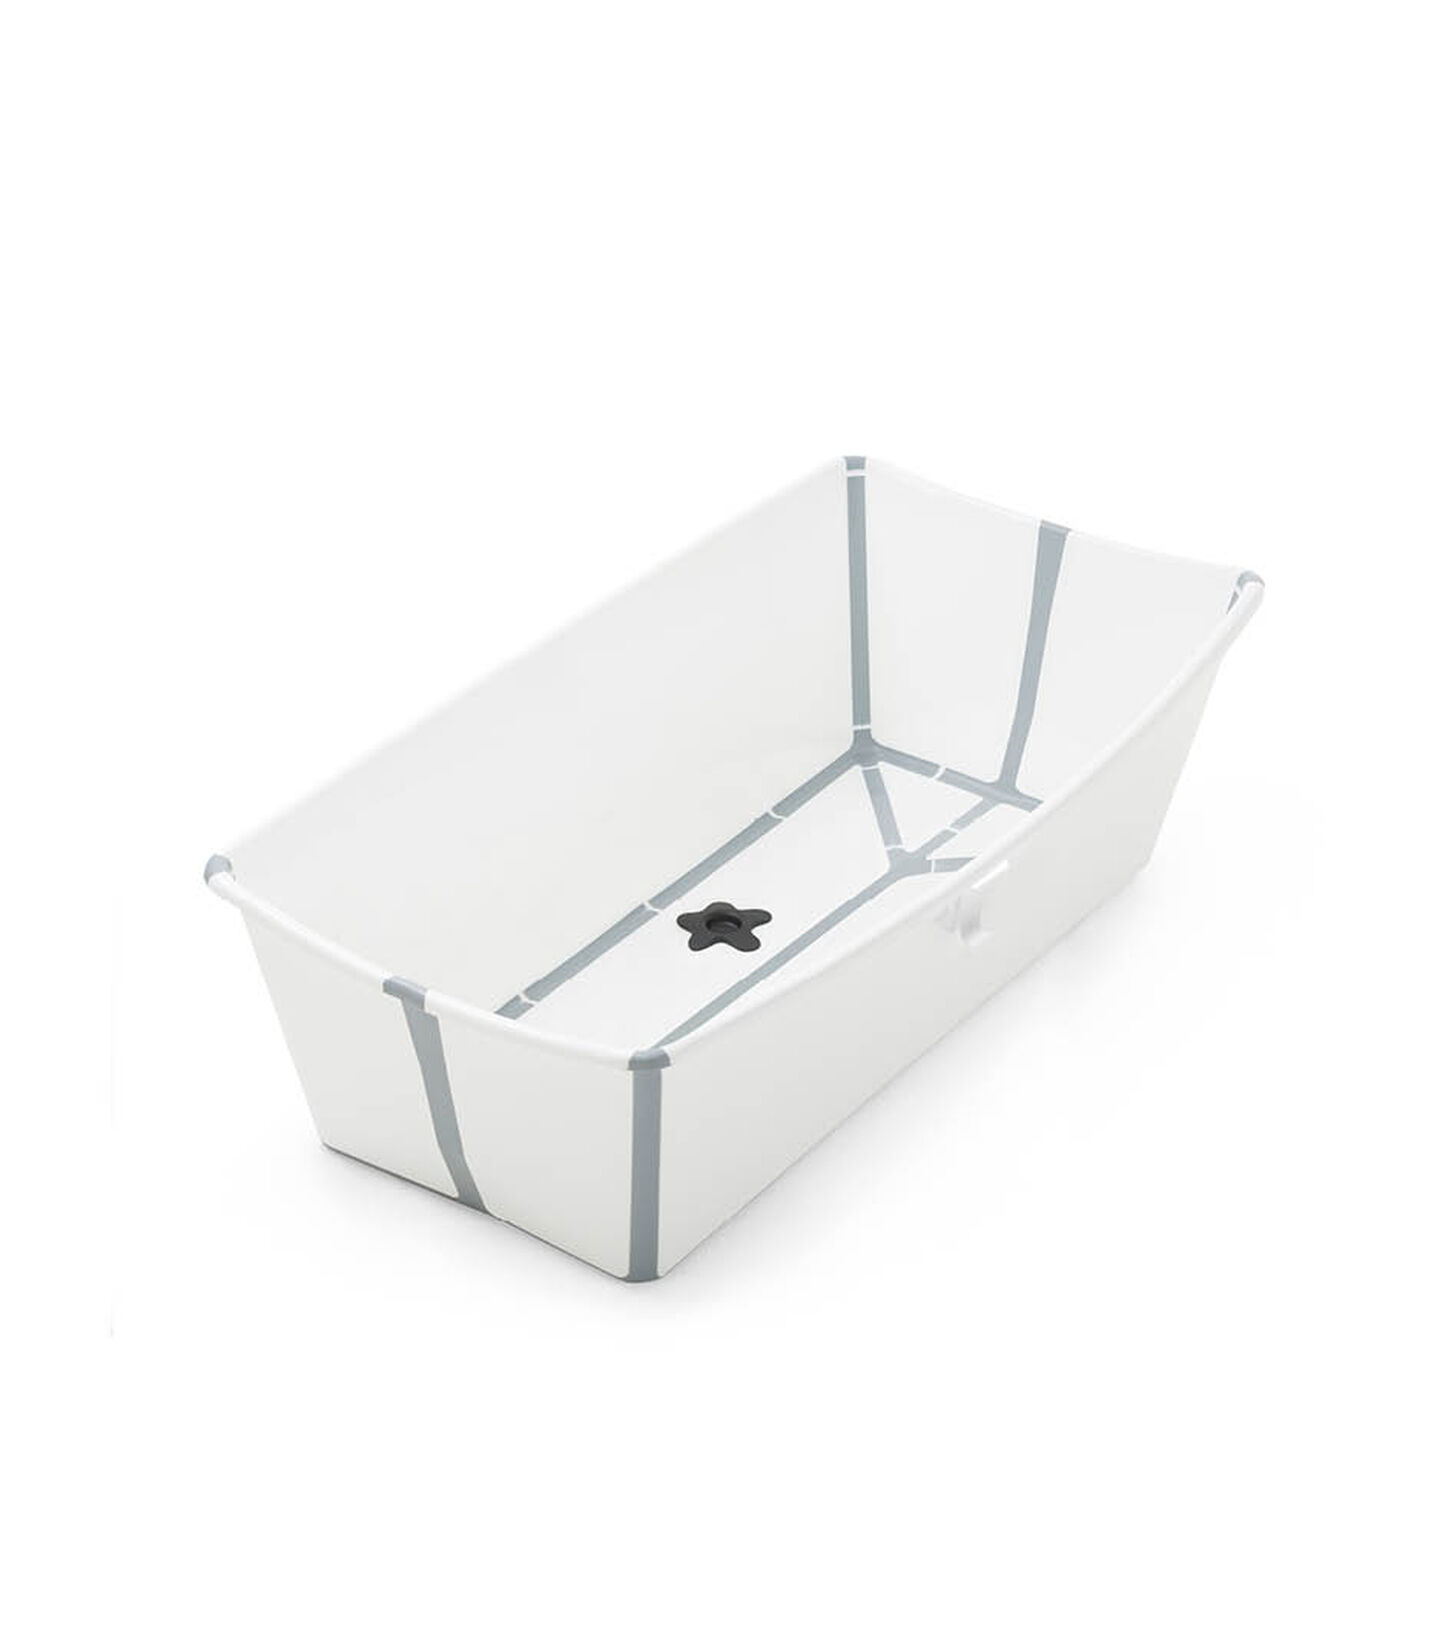 Stokke® Flexi Bath® XL bath tub, White Grey. view 2